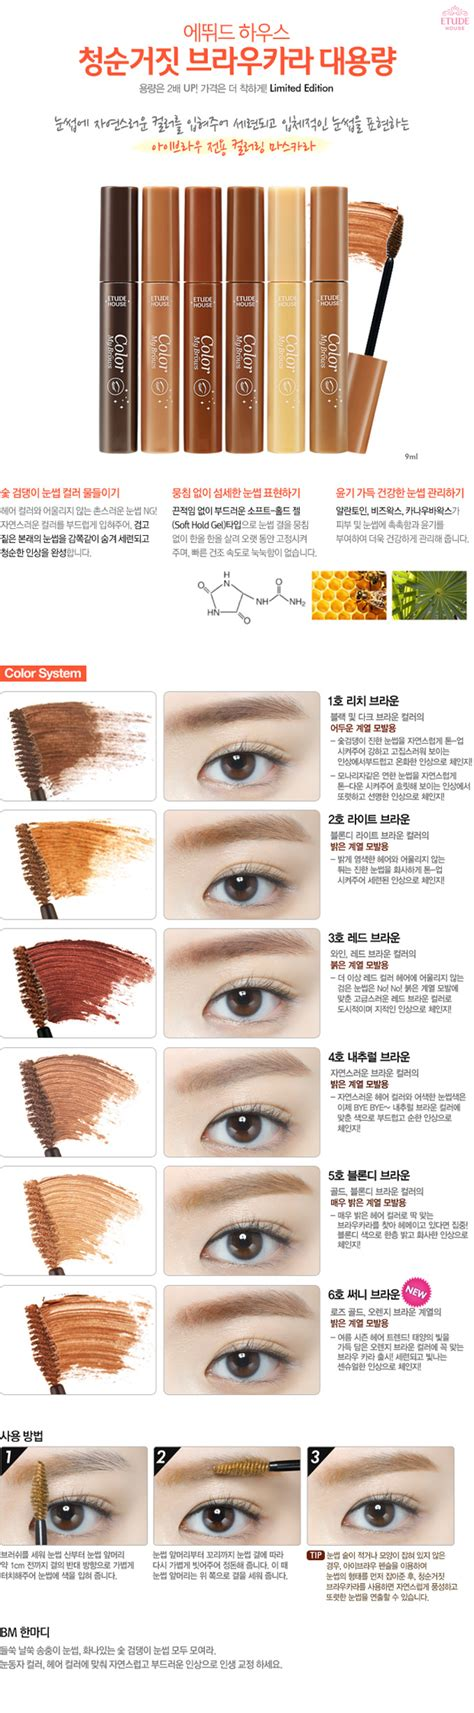 Dijamin Etude House Etude House Color My Brows etude house color my brows big size 9ml